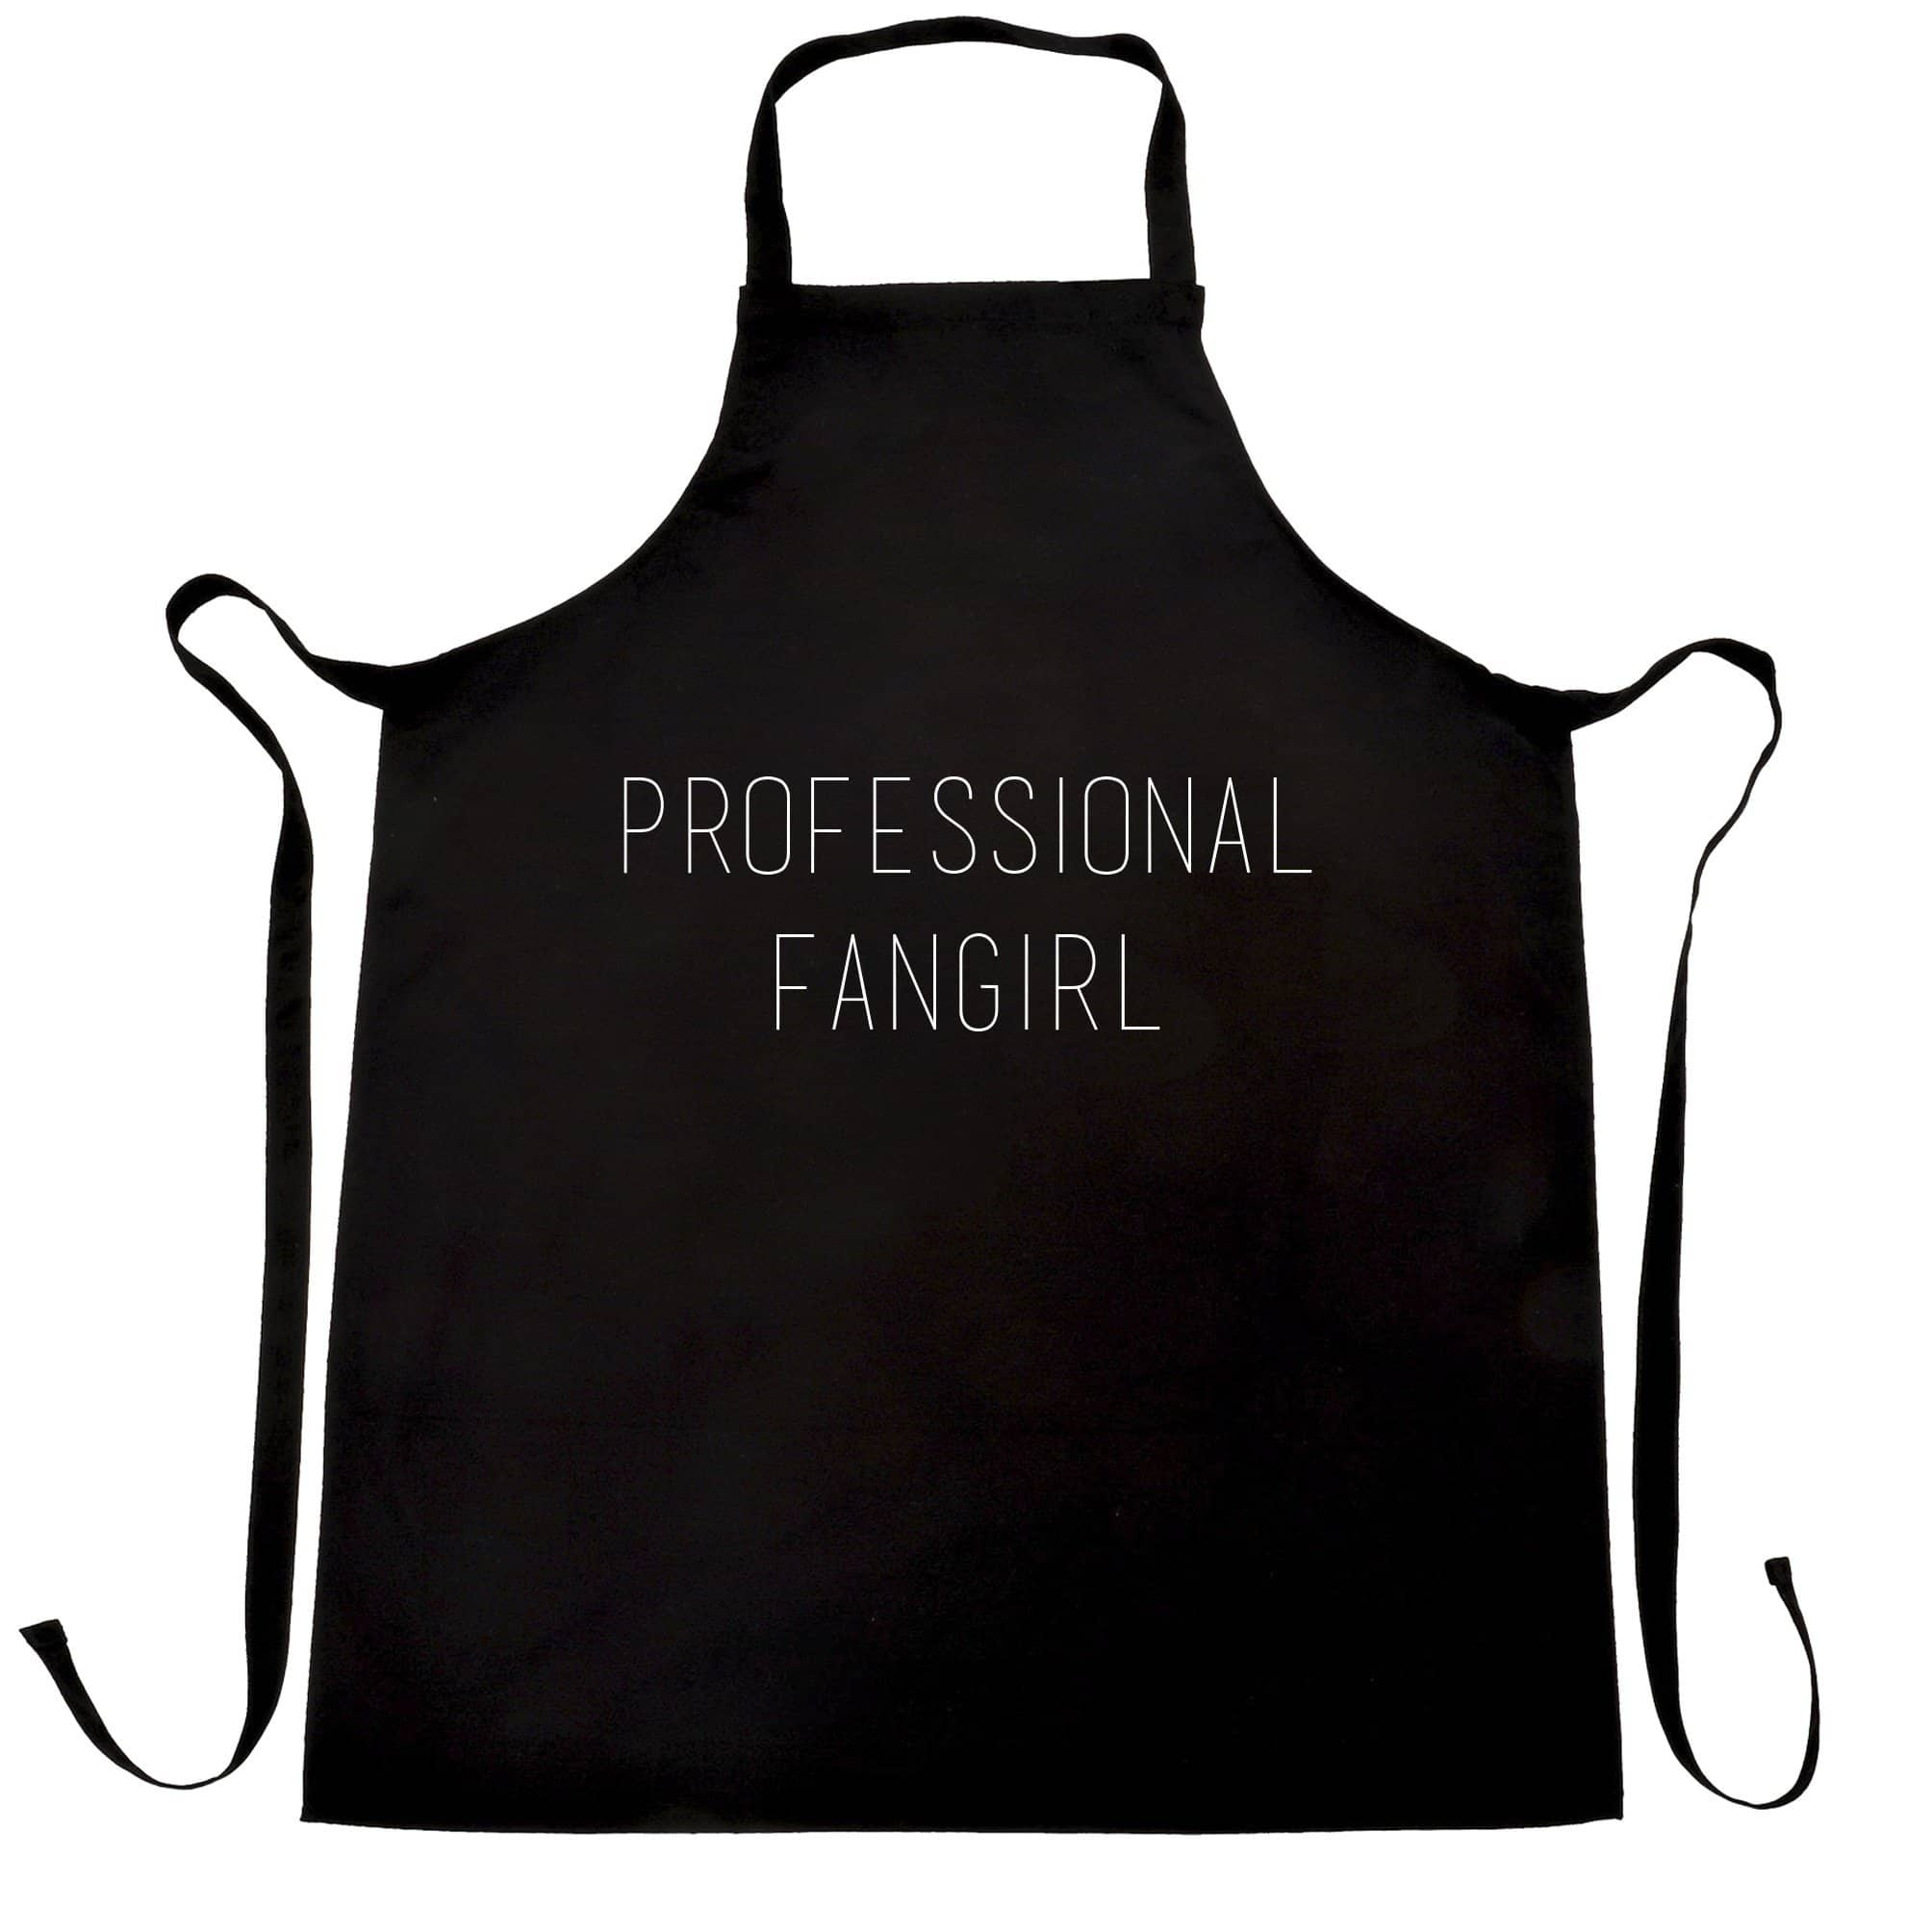 Novelty Joke Slogan Chef's Apron Professional Fangirl